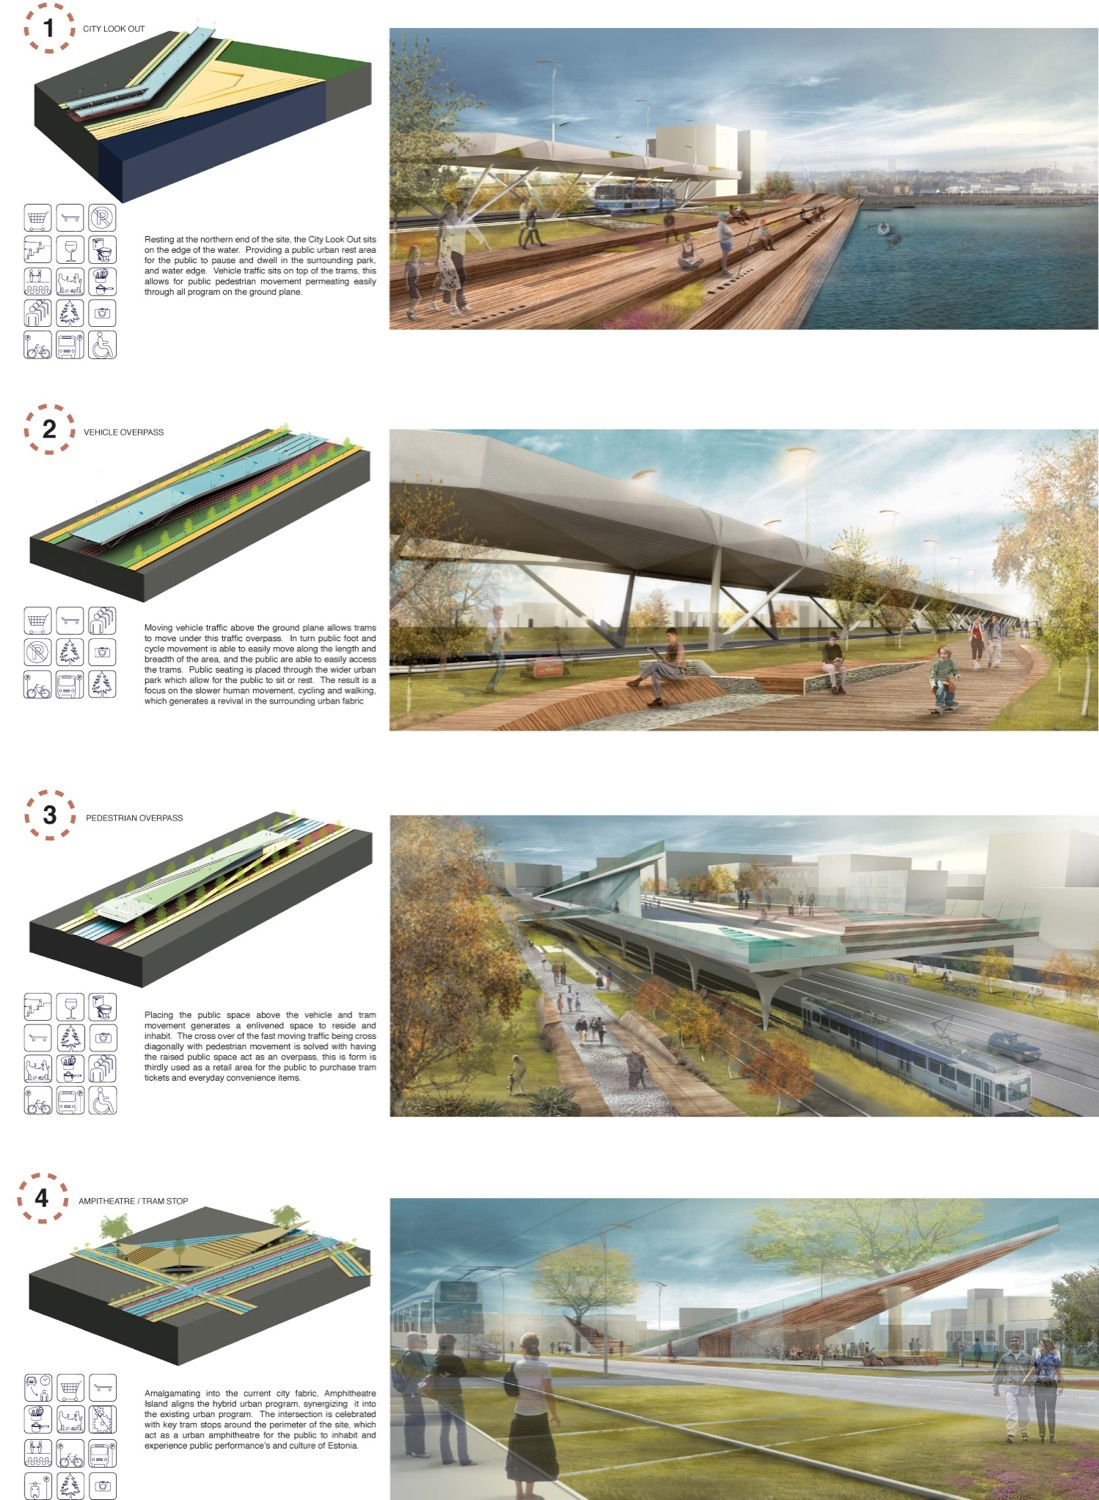 Gallery of Winners of the Tallinn Vision Competition ...